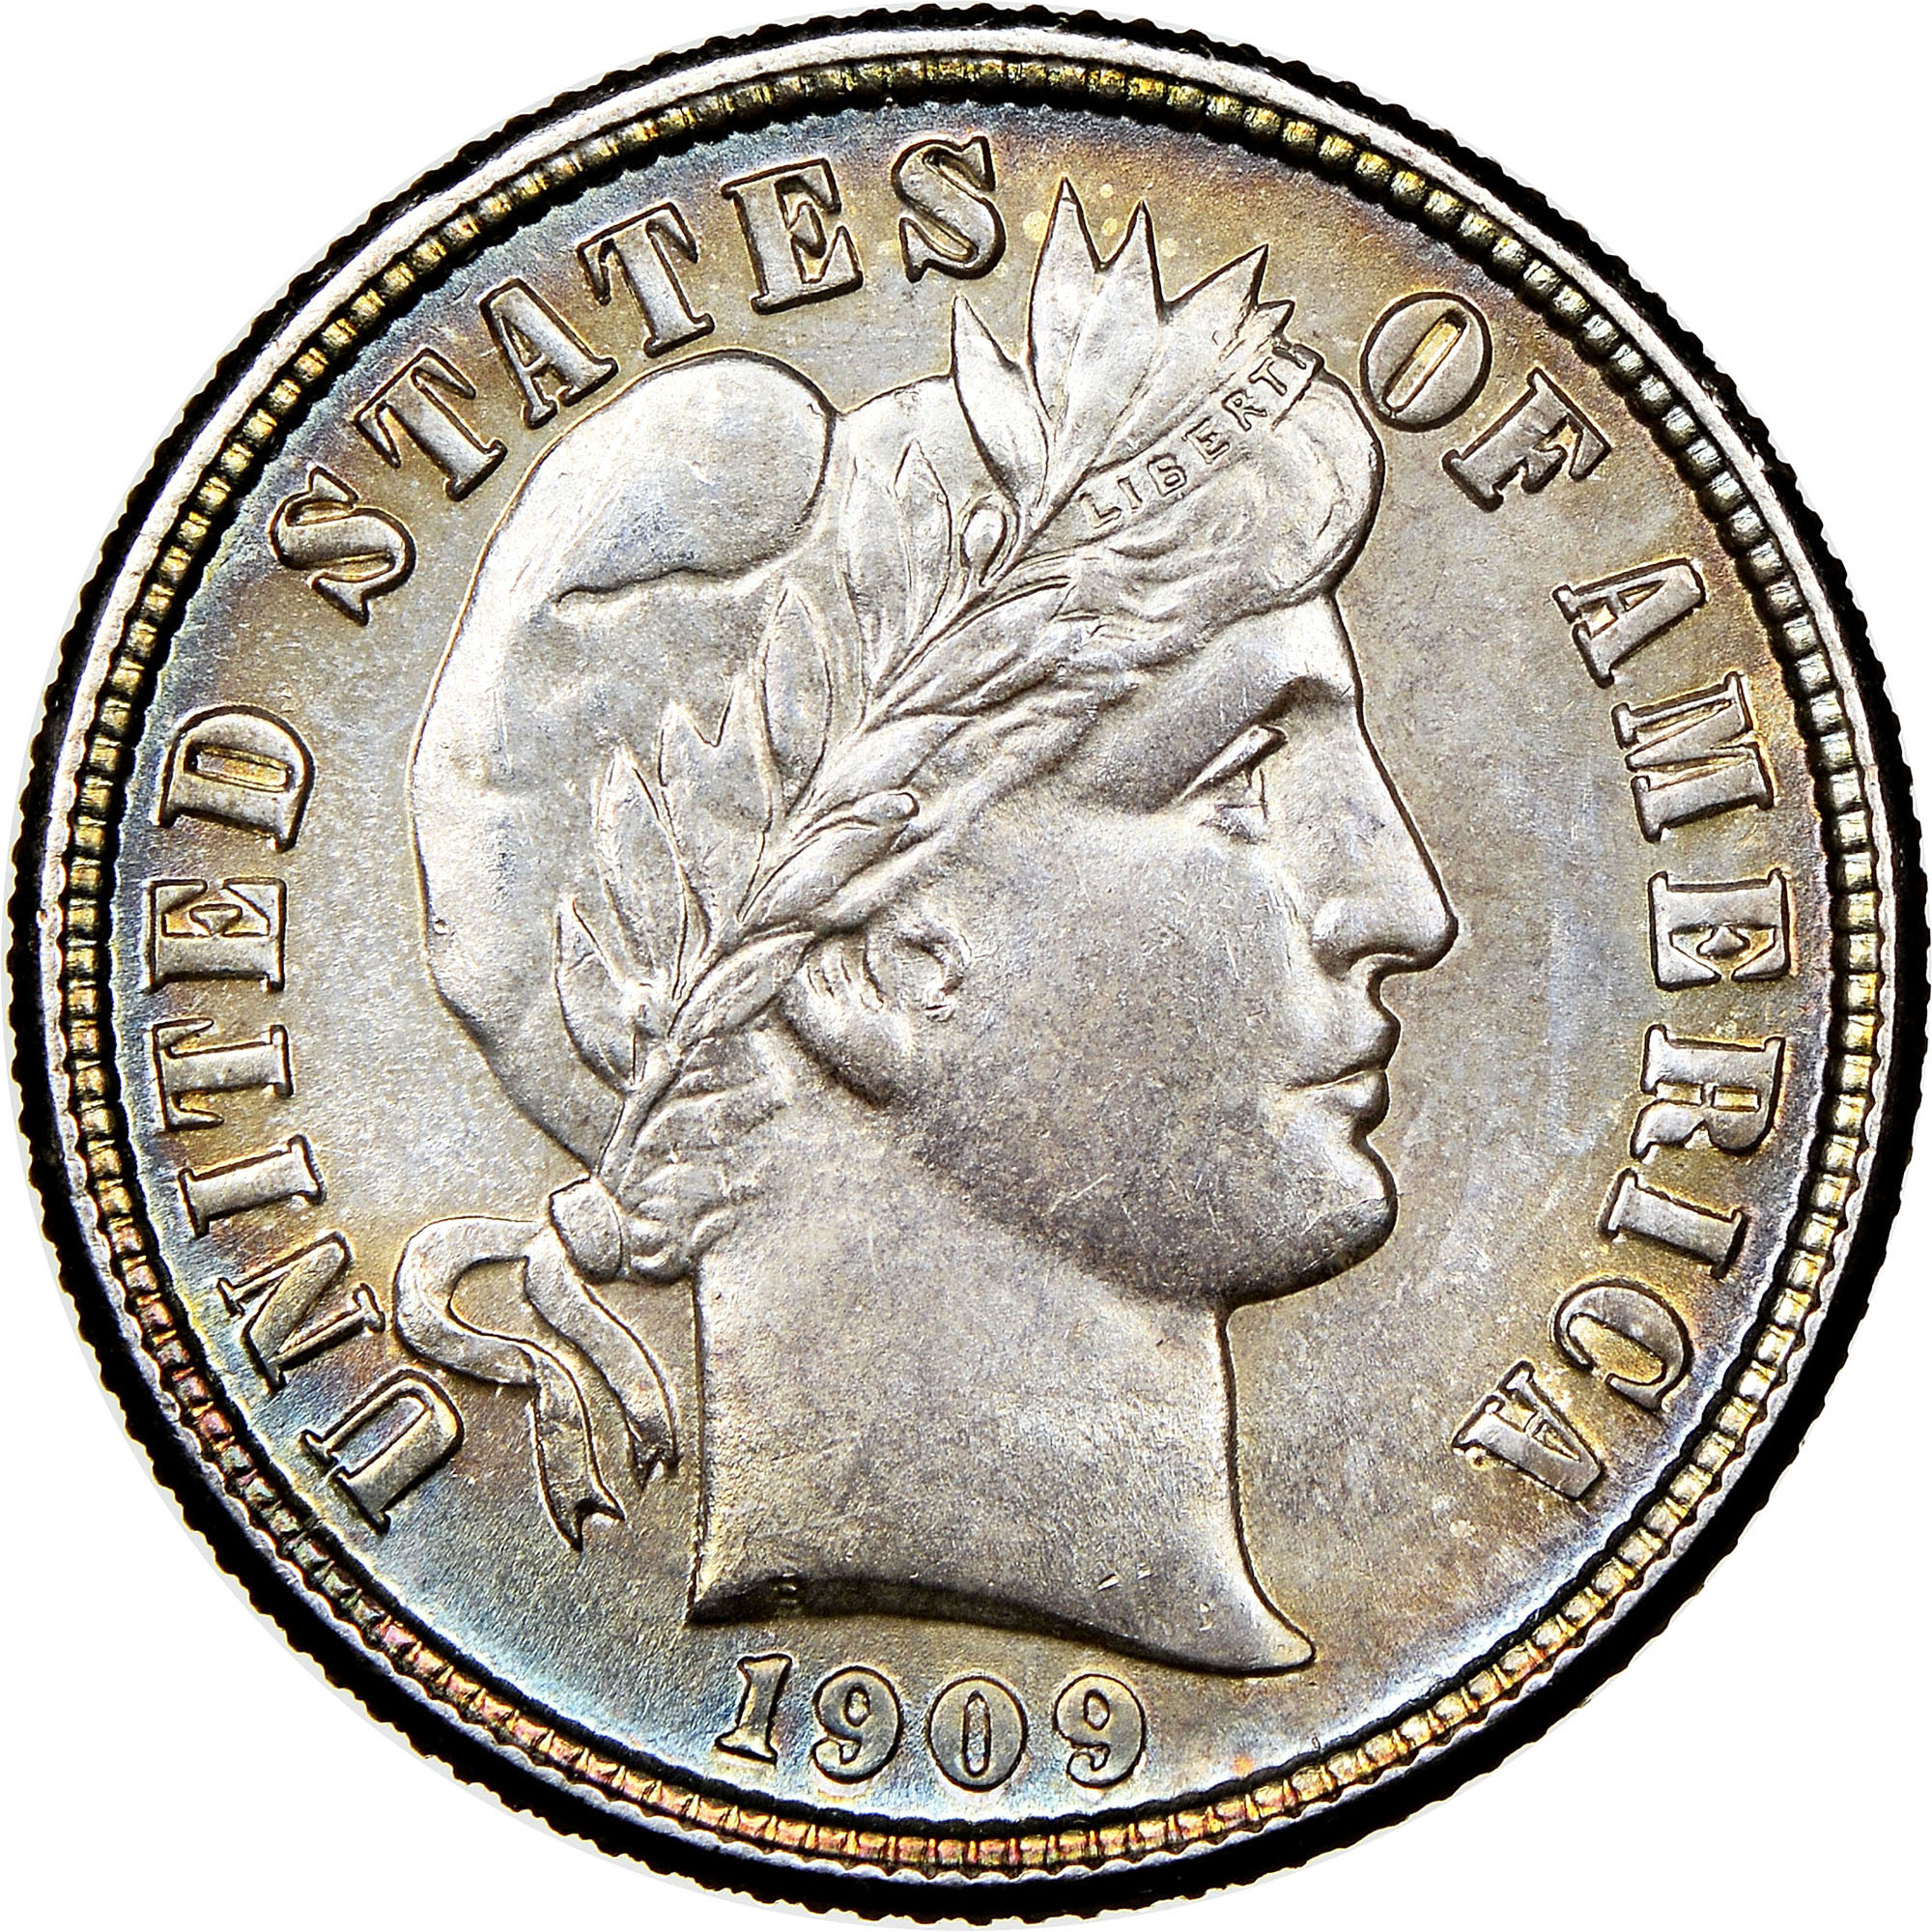 1909 Silver Barber Dime GOOD FREE SHIPPING